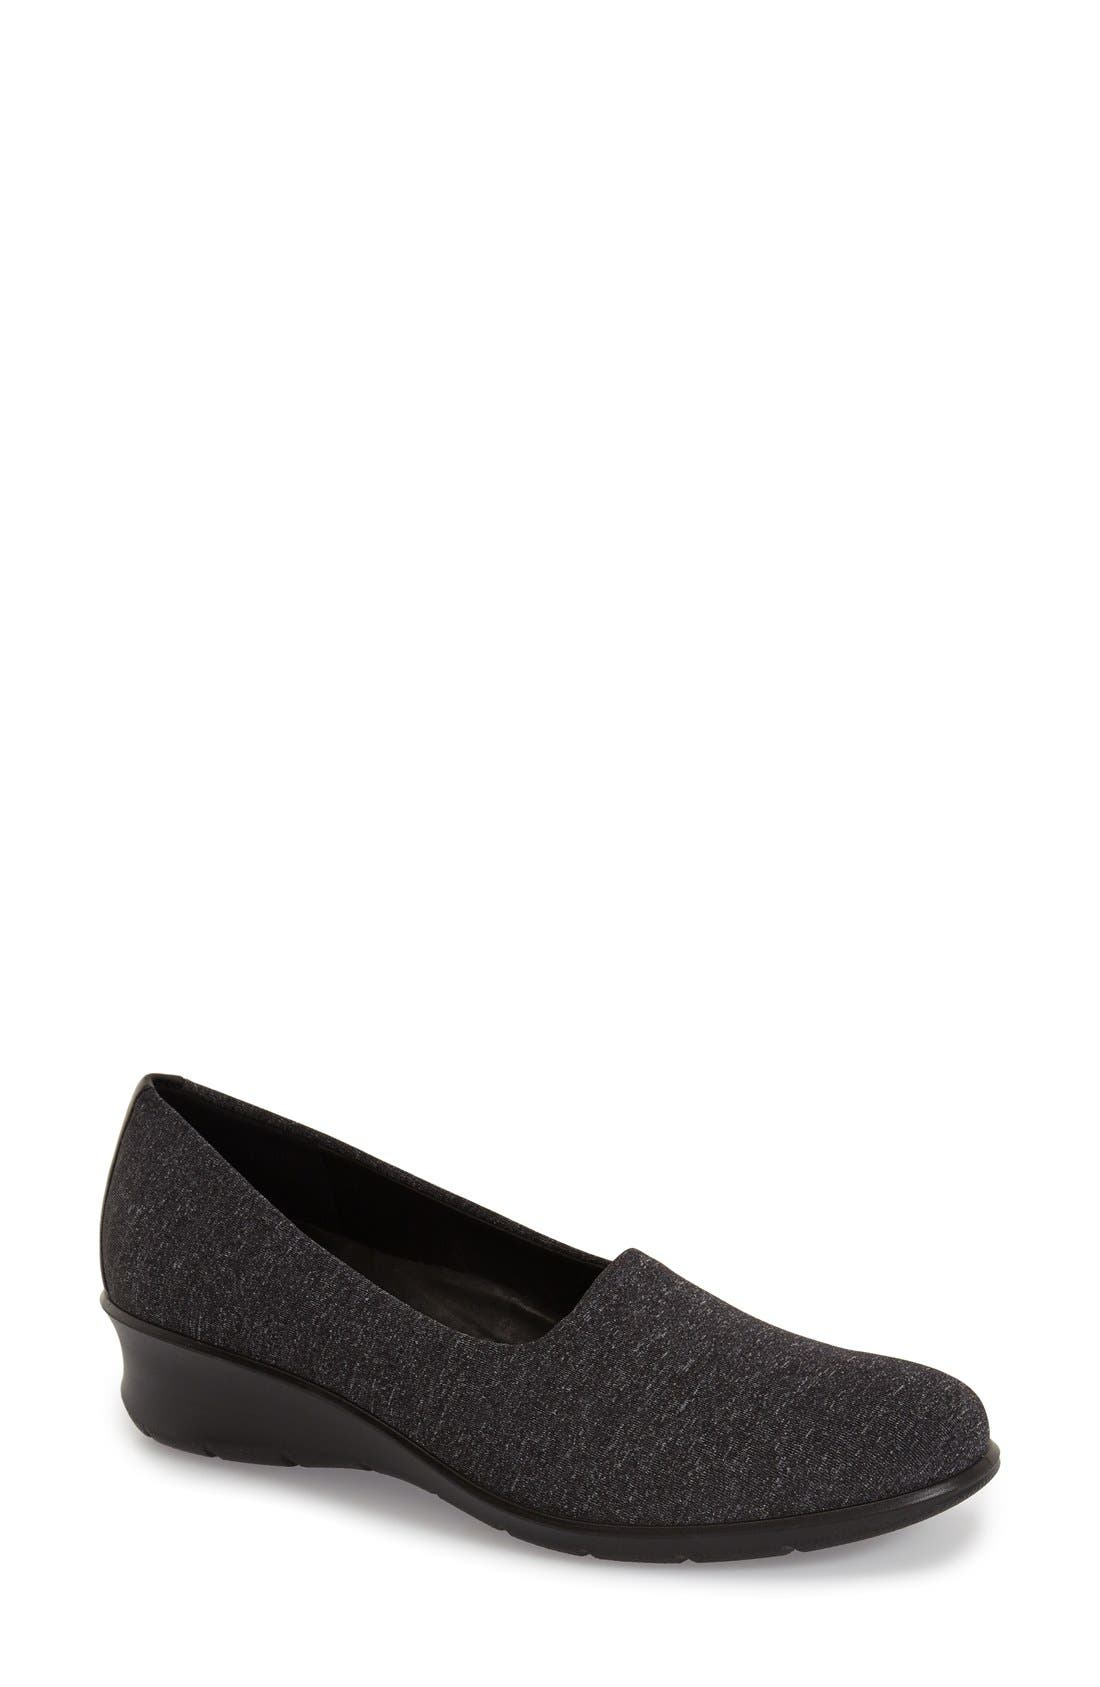 'Felicia - Stretch' Wedge Loafer,                             Main thumbnail 1, color,                             019